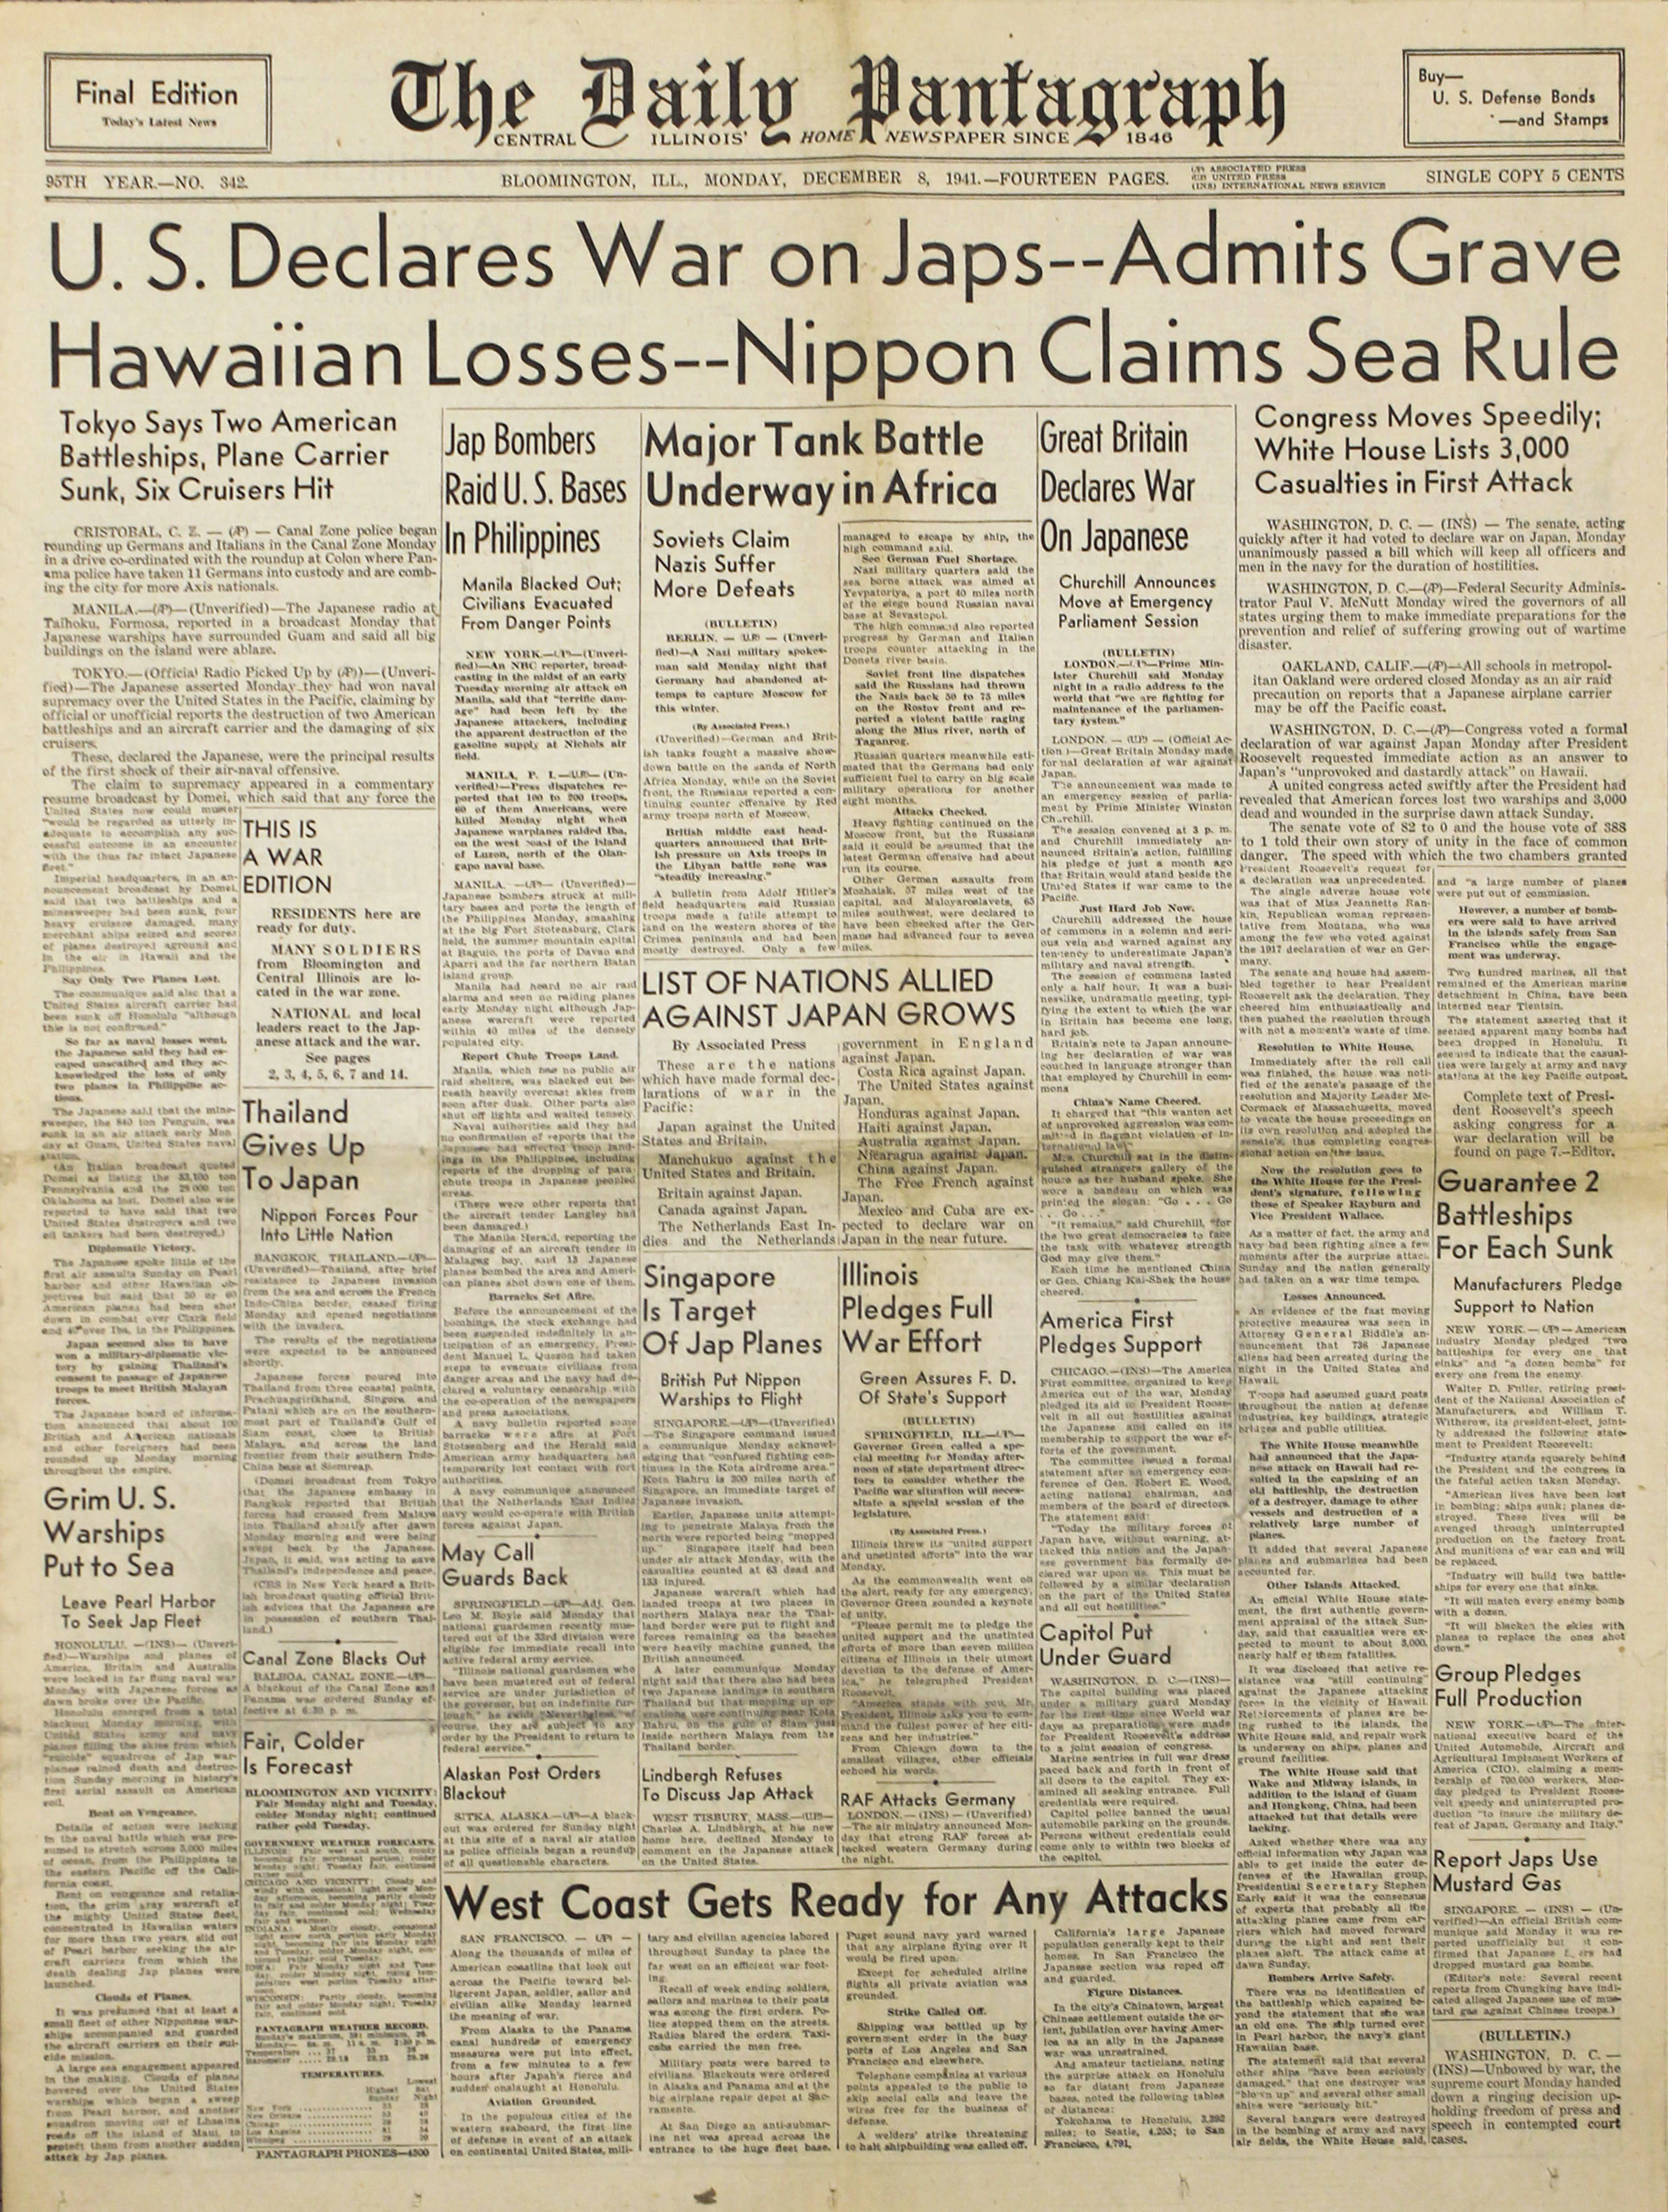 Congress declares war on Japan, 1941.